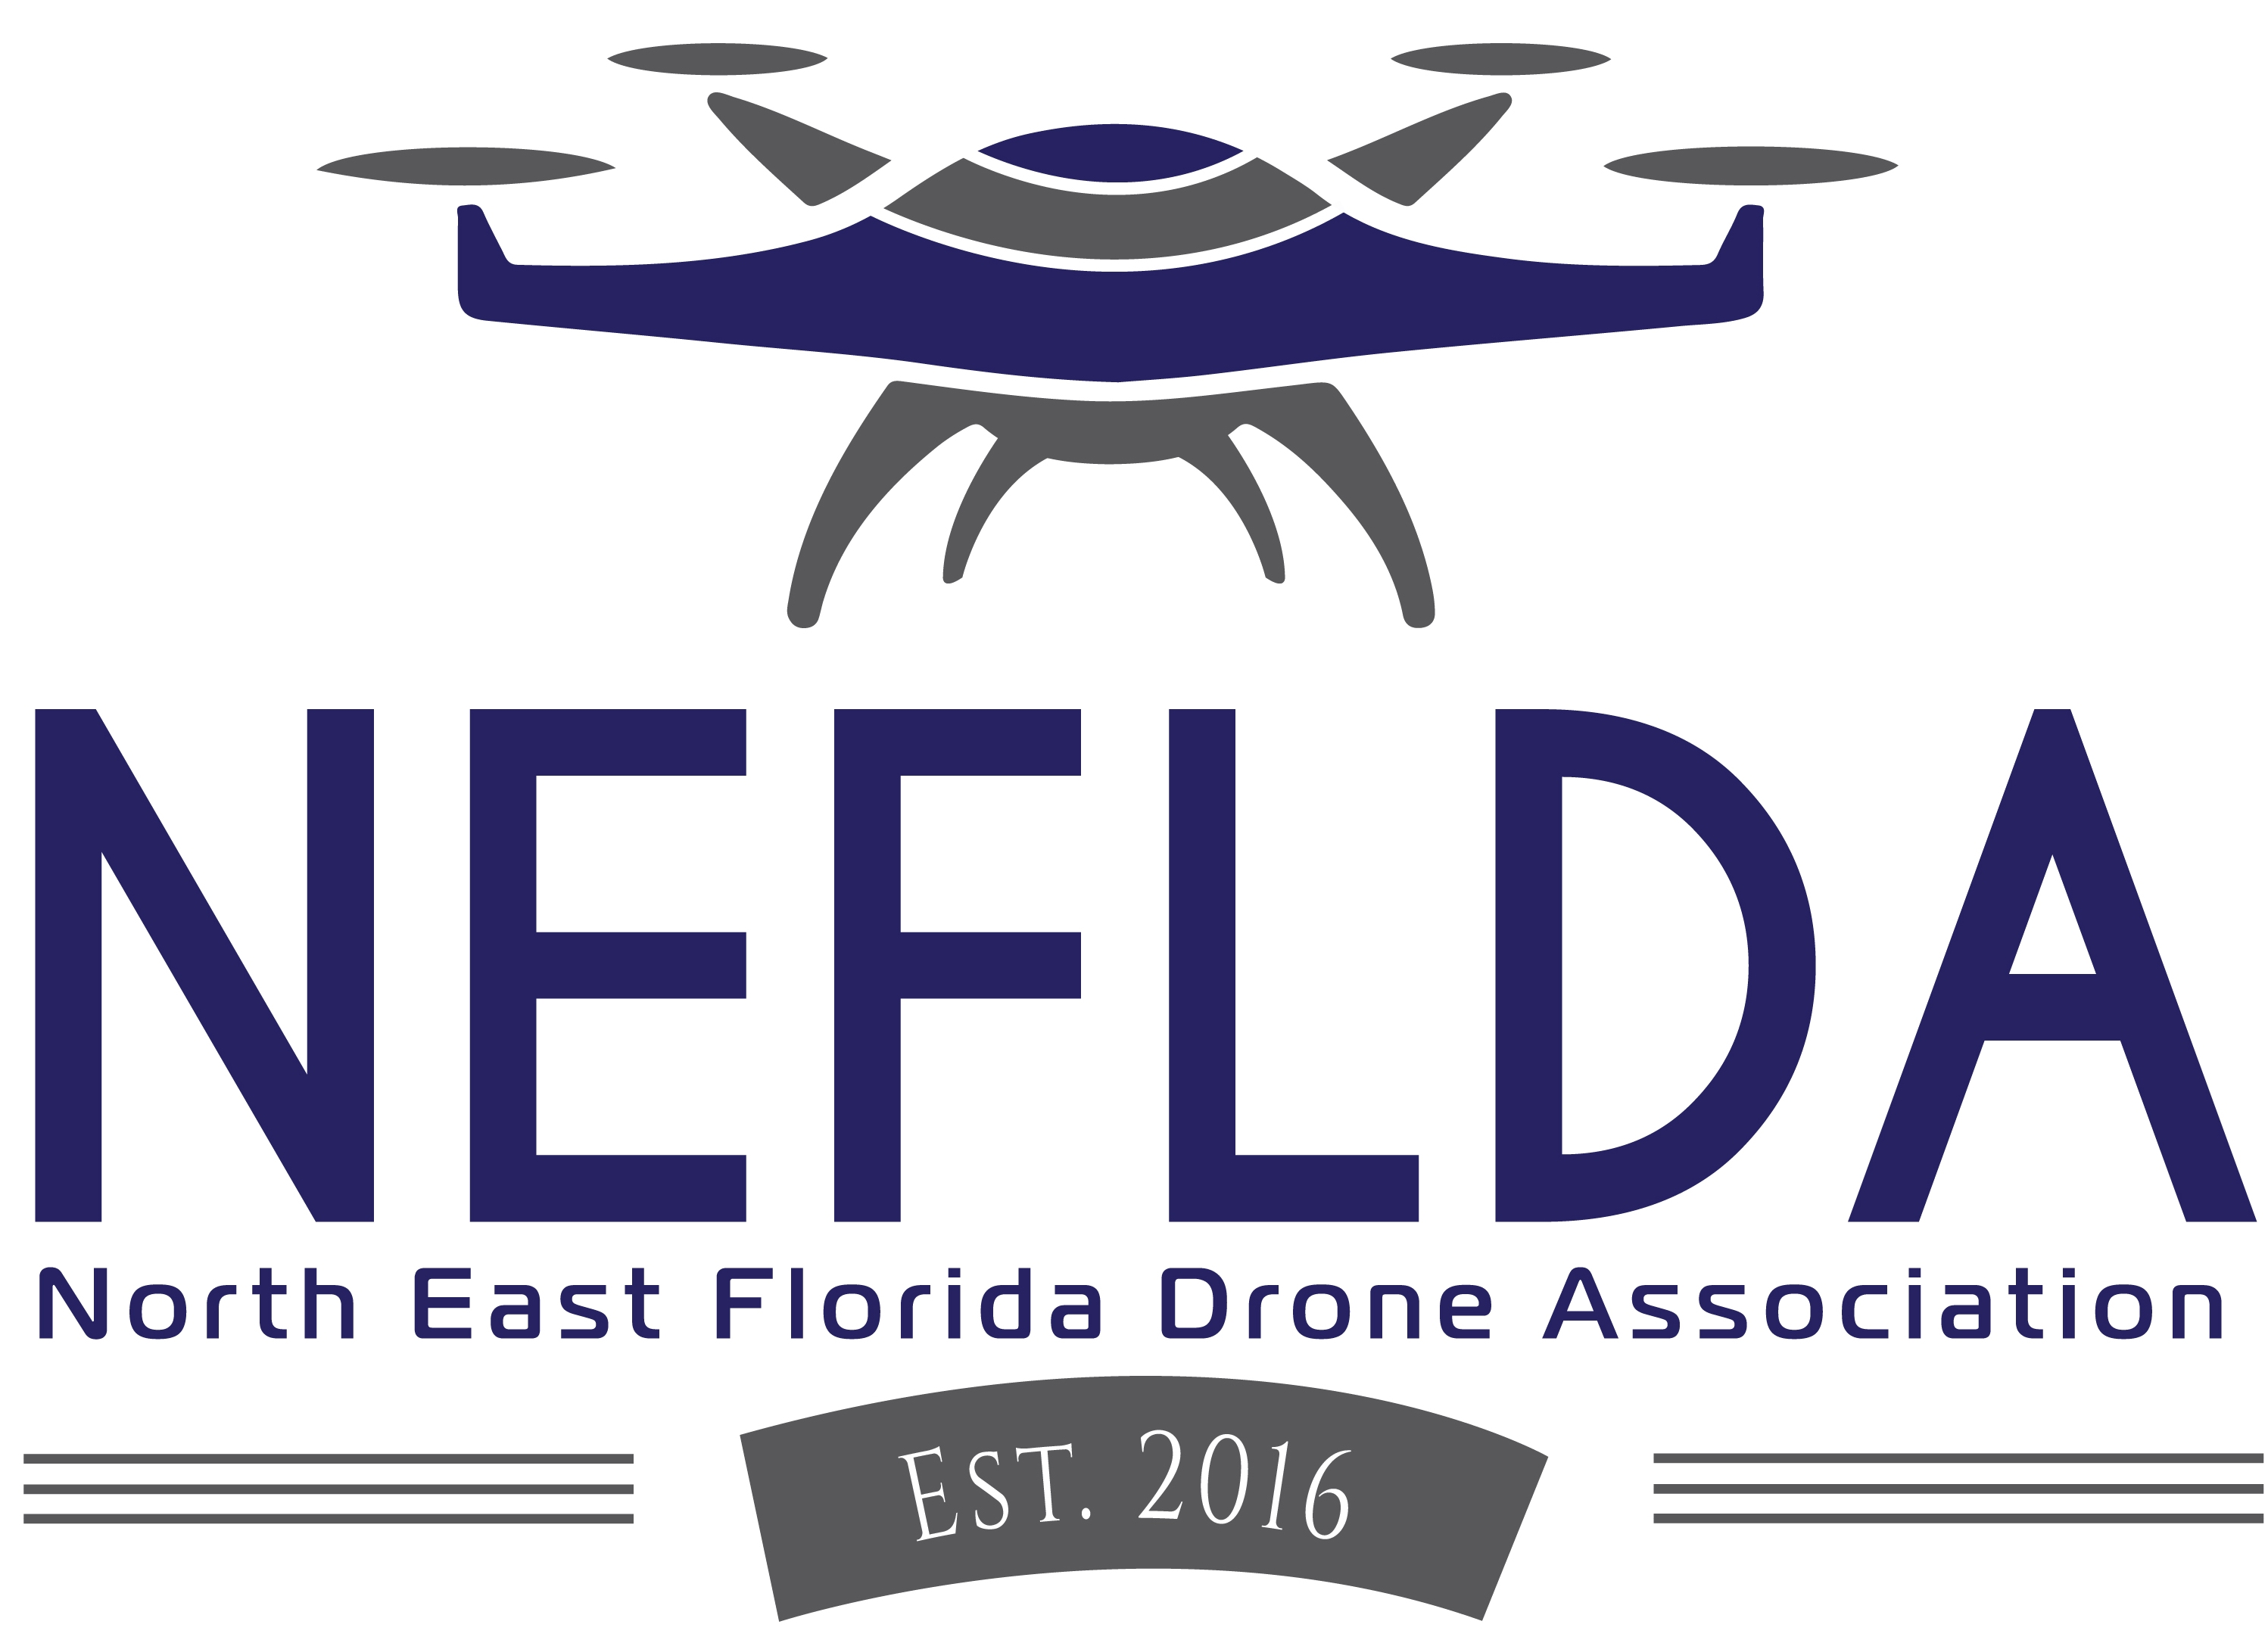 Northeast Florida Drone Association